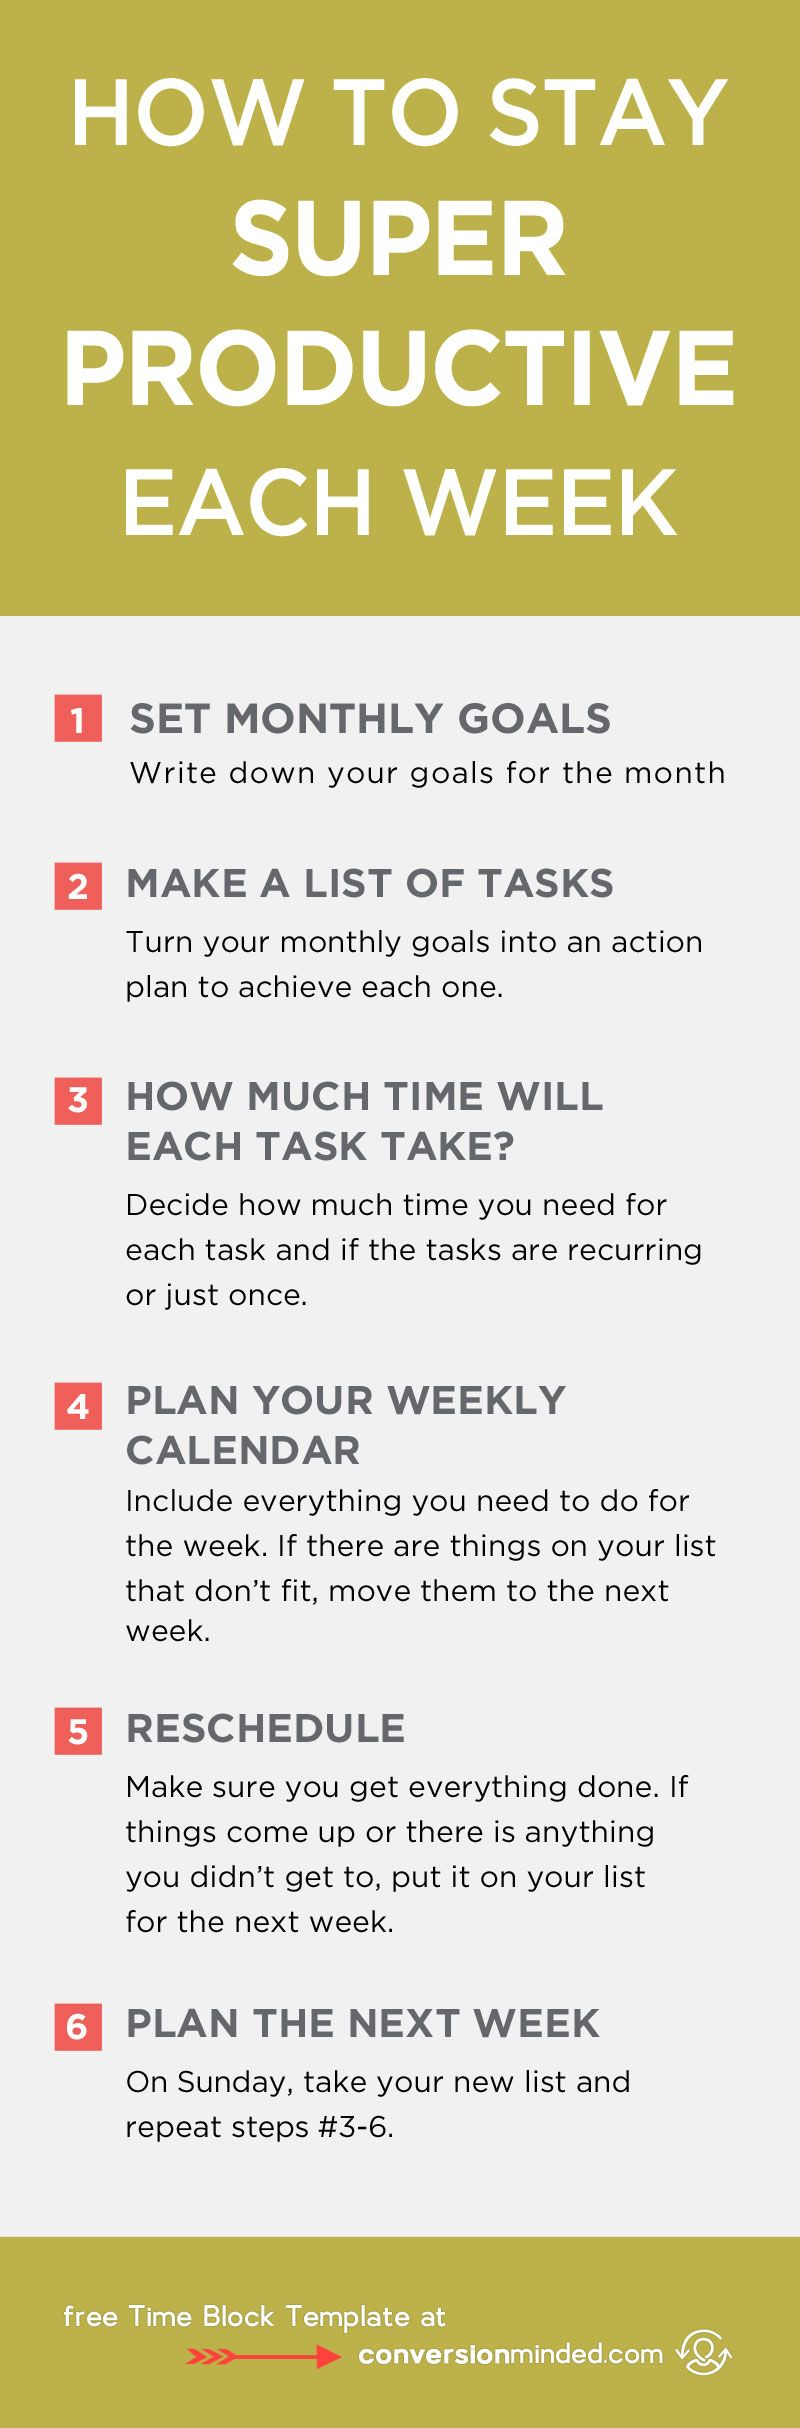 How To Stay Super Productive Each Week  Ready To Turn Your ToDo